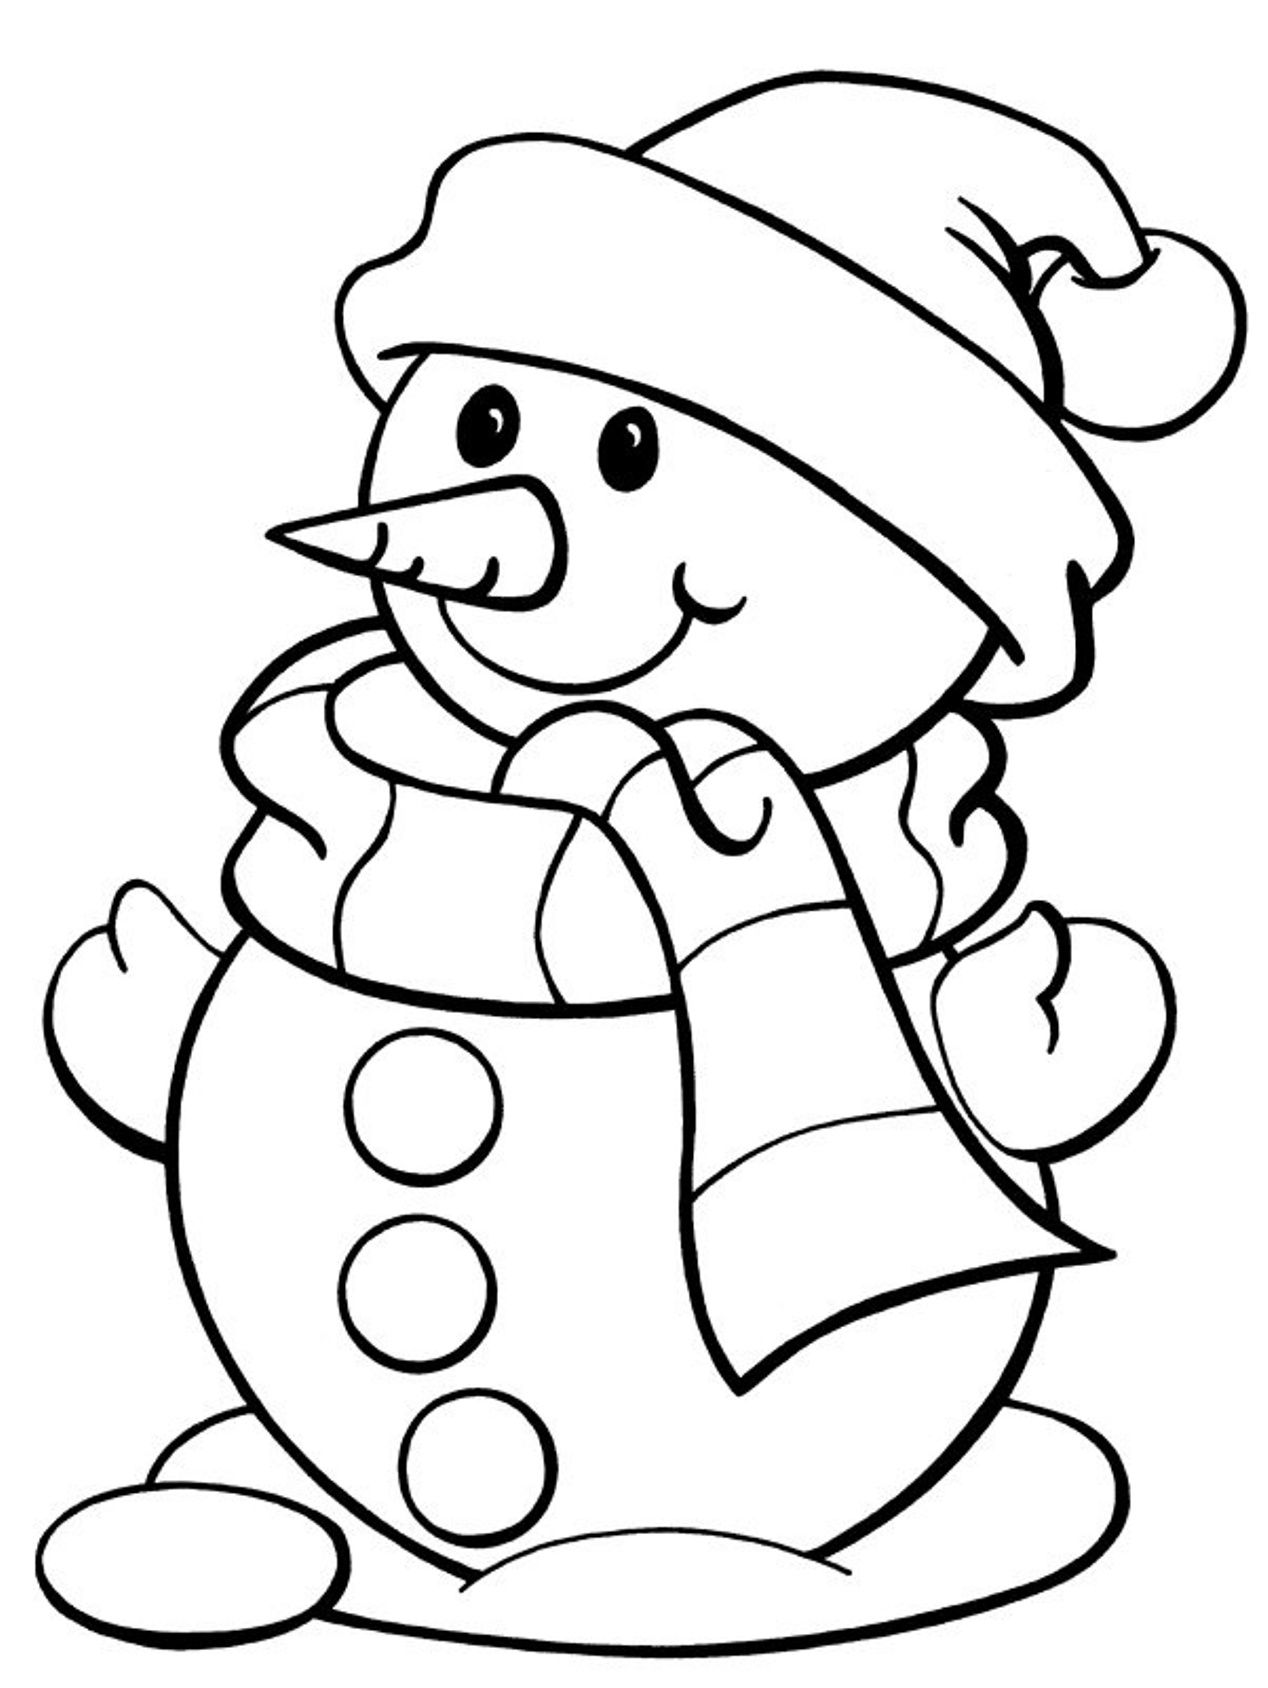 Santa Claus Outfit Coloring Pages With Winter Google Search Party Pinterest